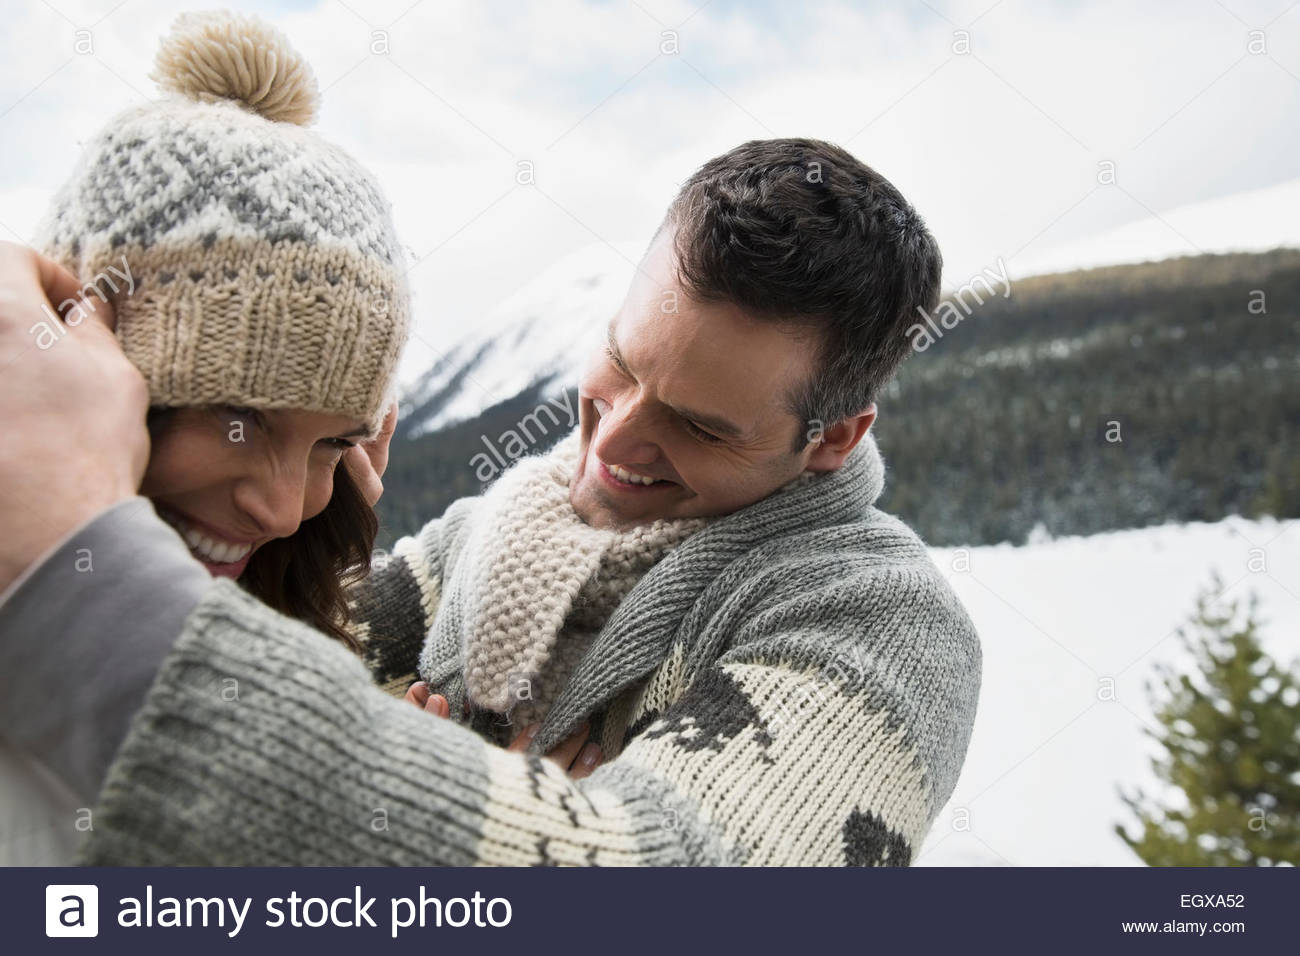 Playful couple wearing warm clothing in snow - Stock Image